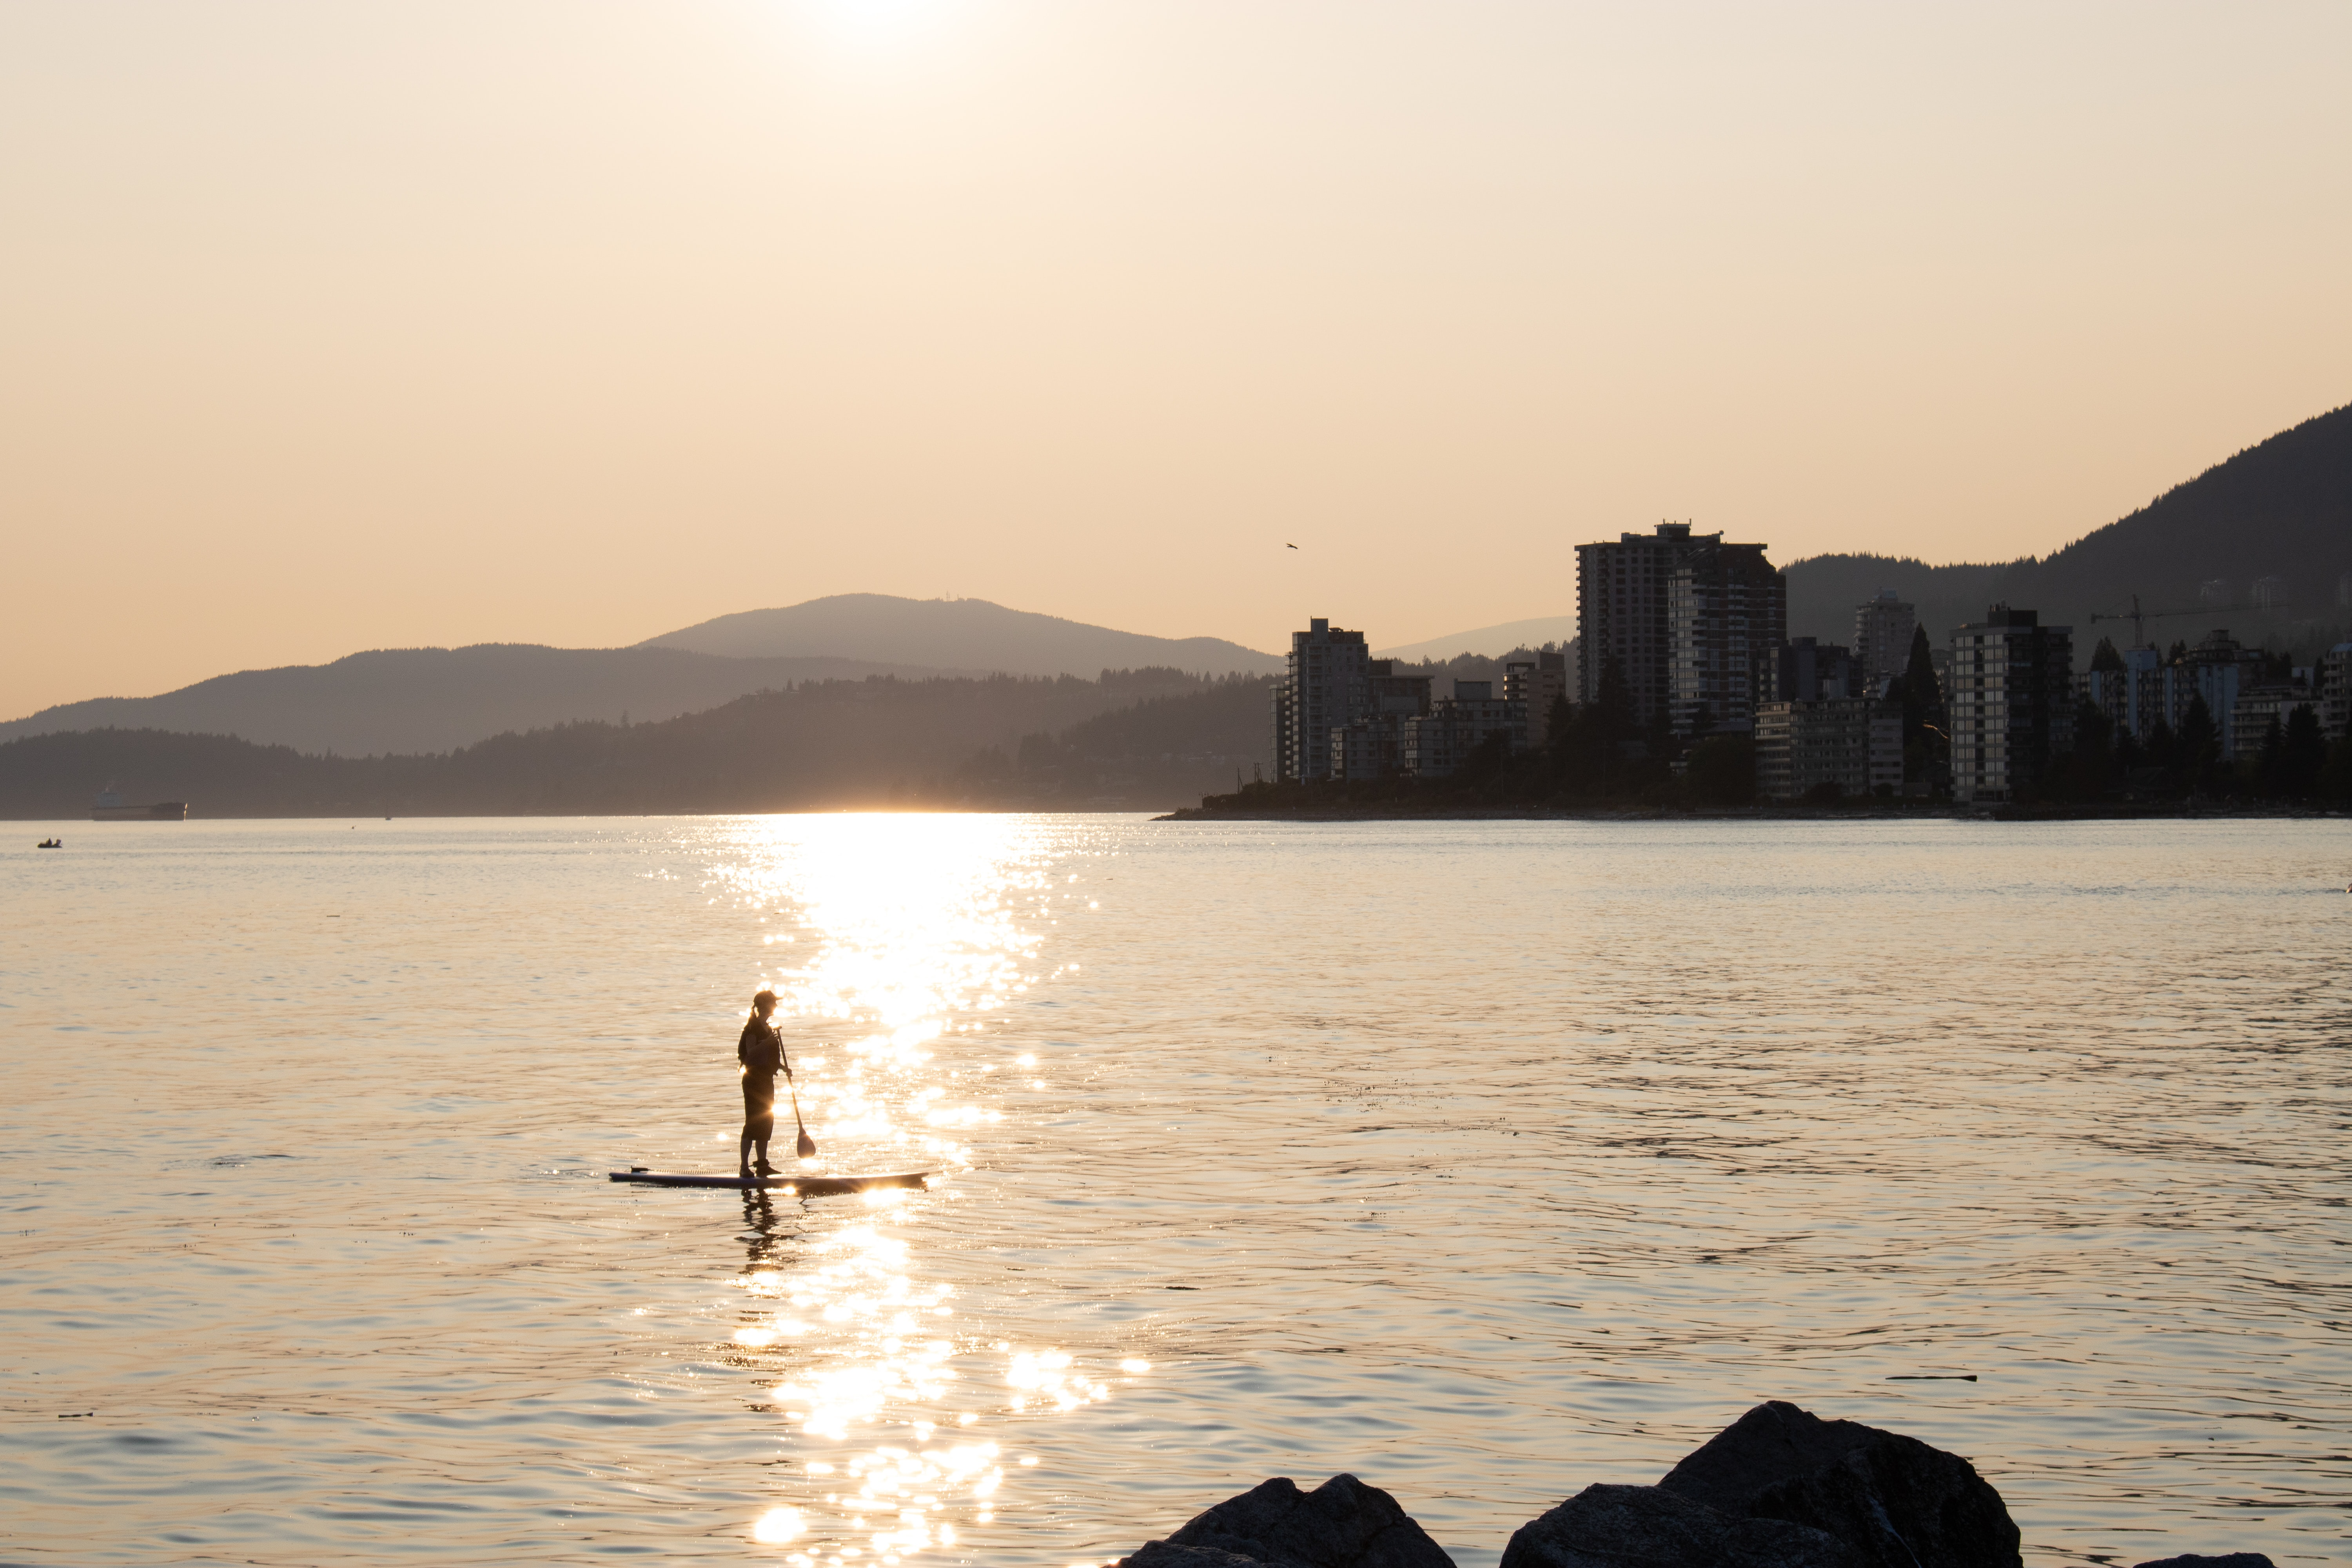 silhouette photo of person holding paddle on body of water